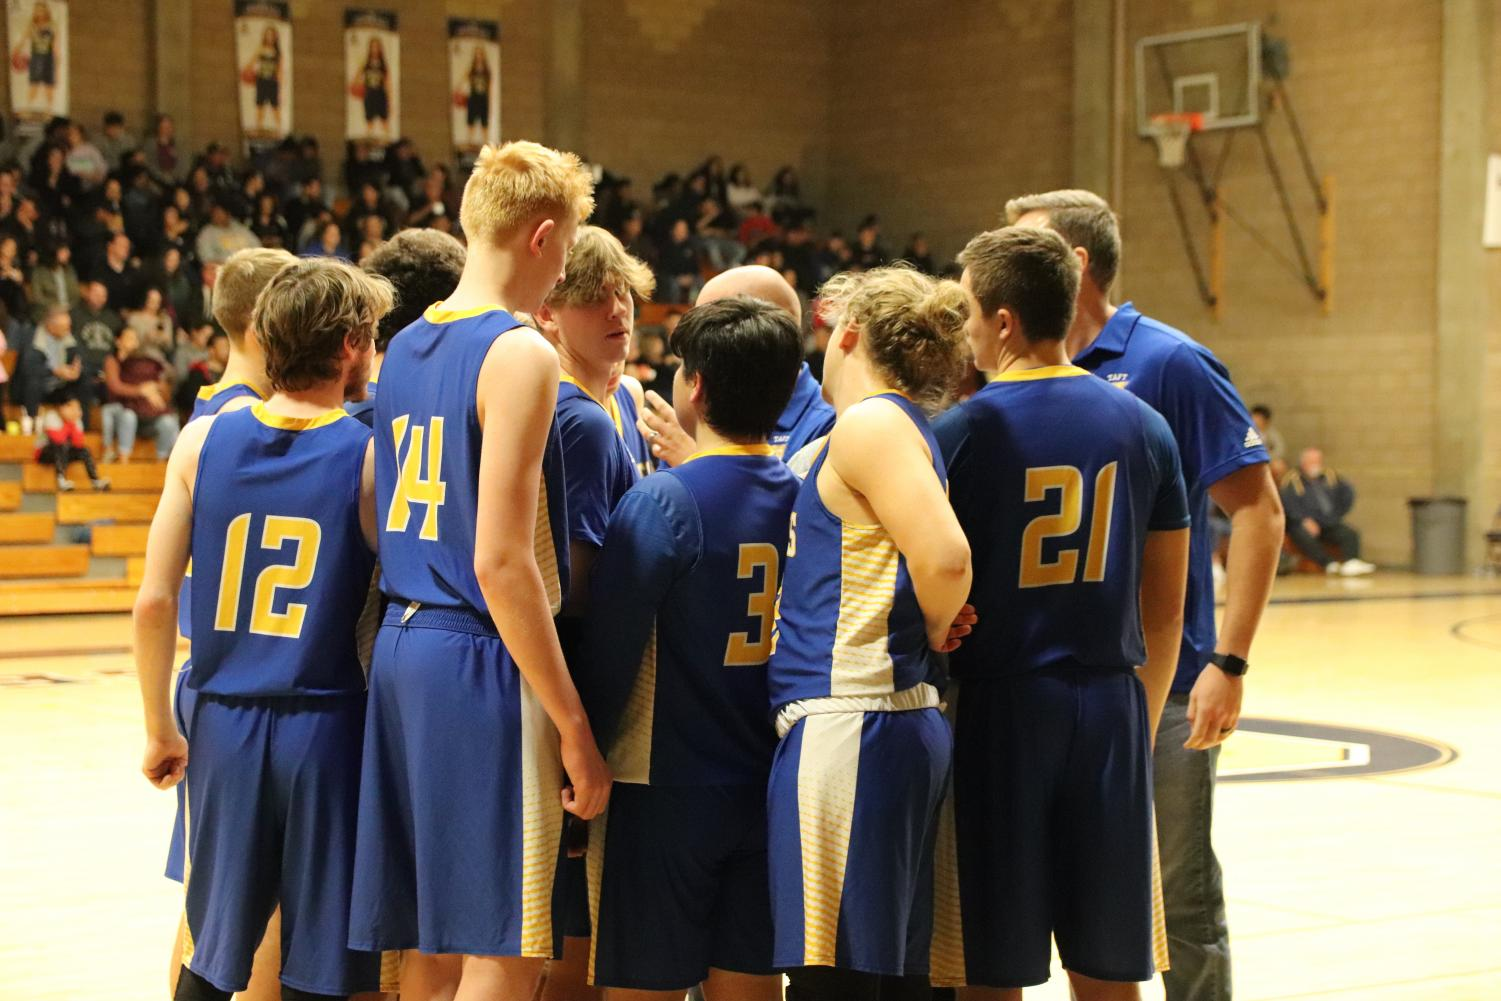 Taft High boys varsity basketball pre-game huddle on Jan. 10 before facing Shafter at Shafter High.